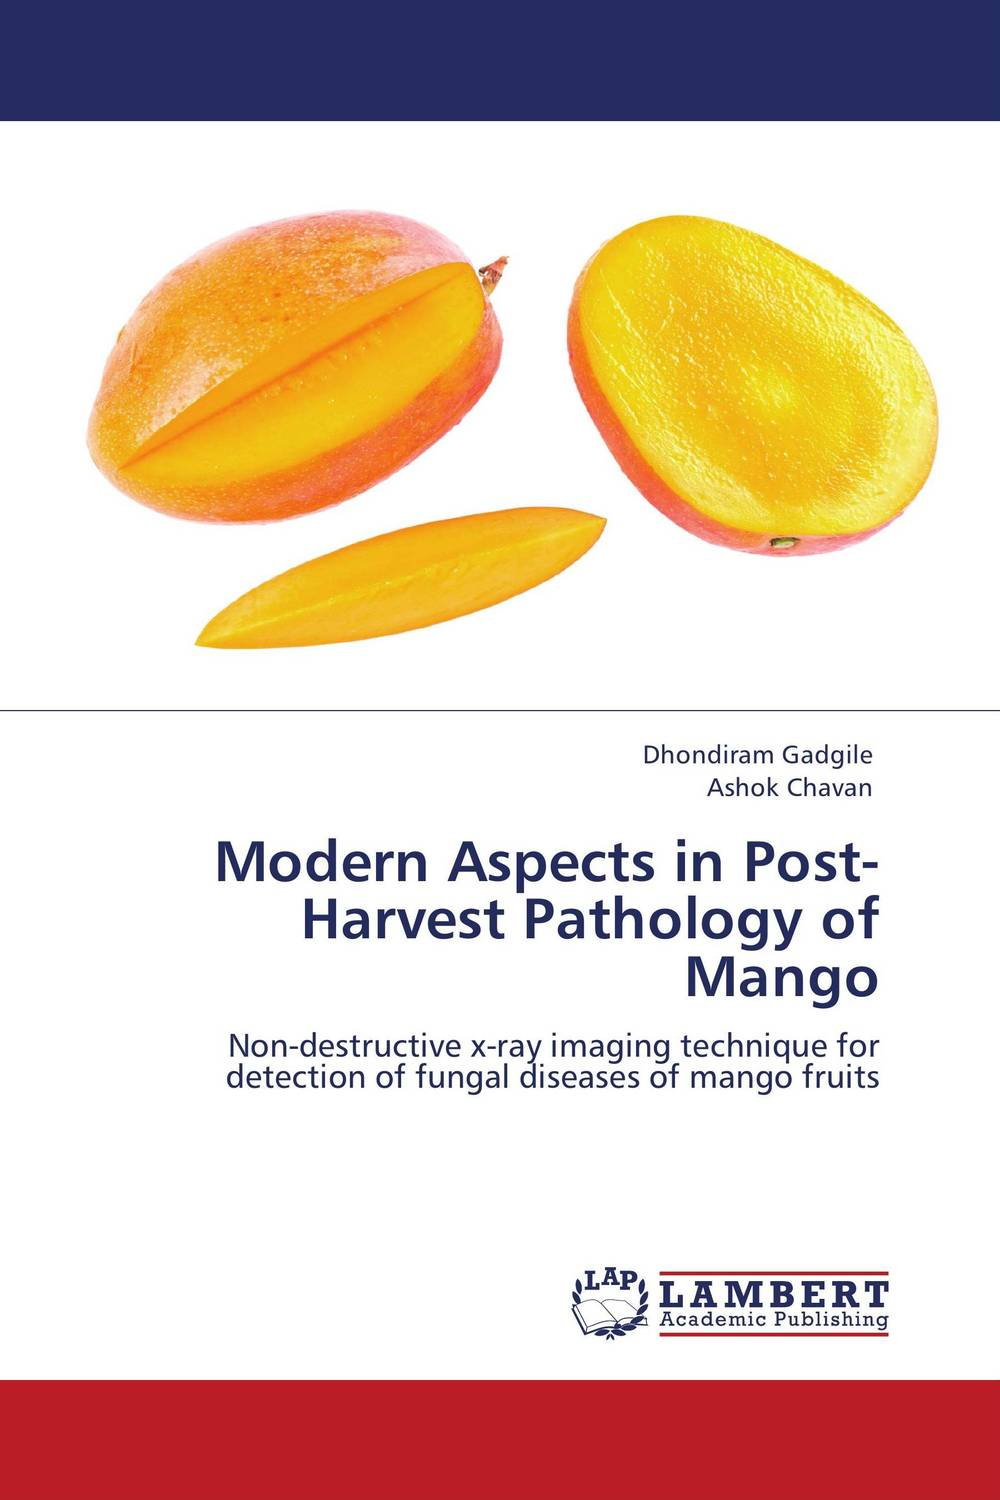 Modern Aspects in Post-Harvest Pathology of Mango h n gour pankaj sharma and rakesh kaushal pathological aspects and management of root rot of groundnut